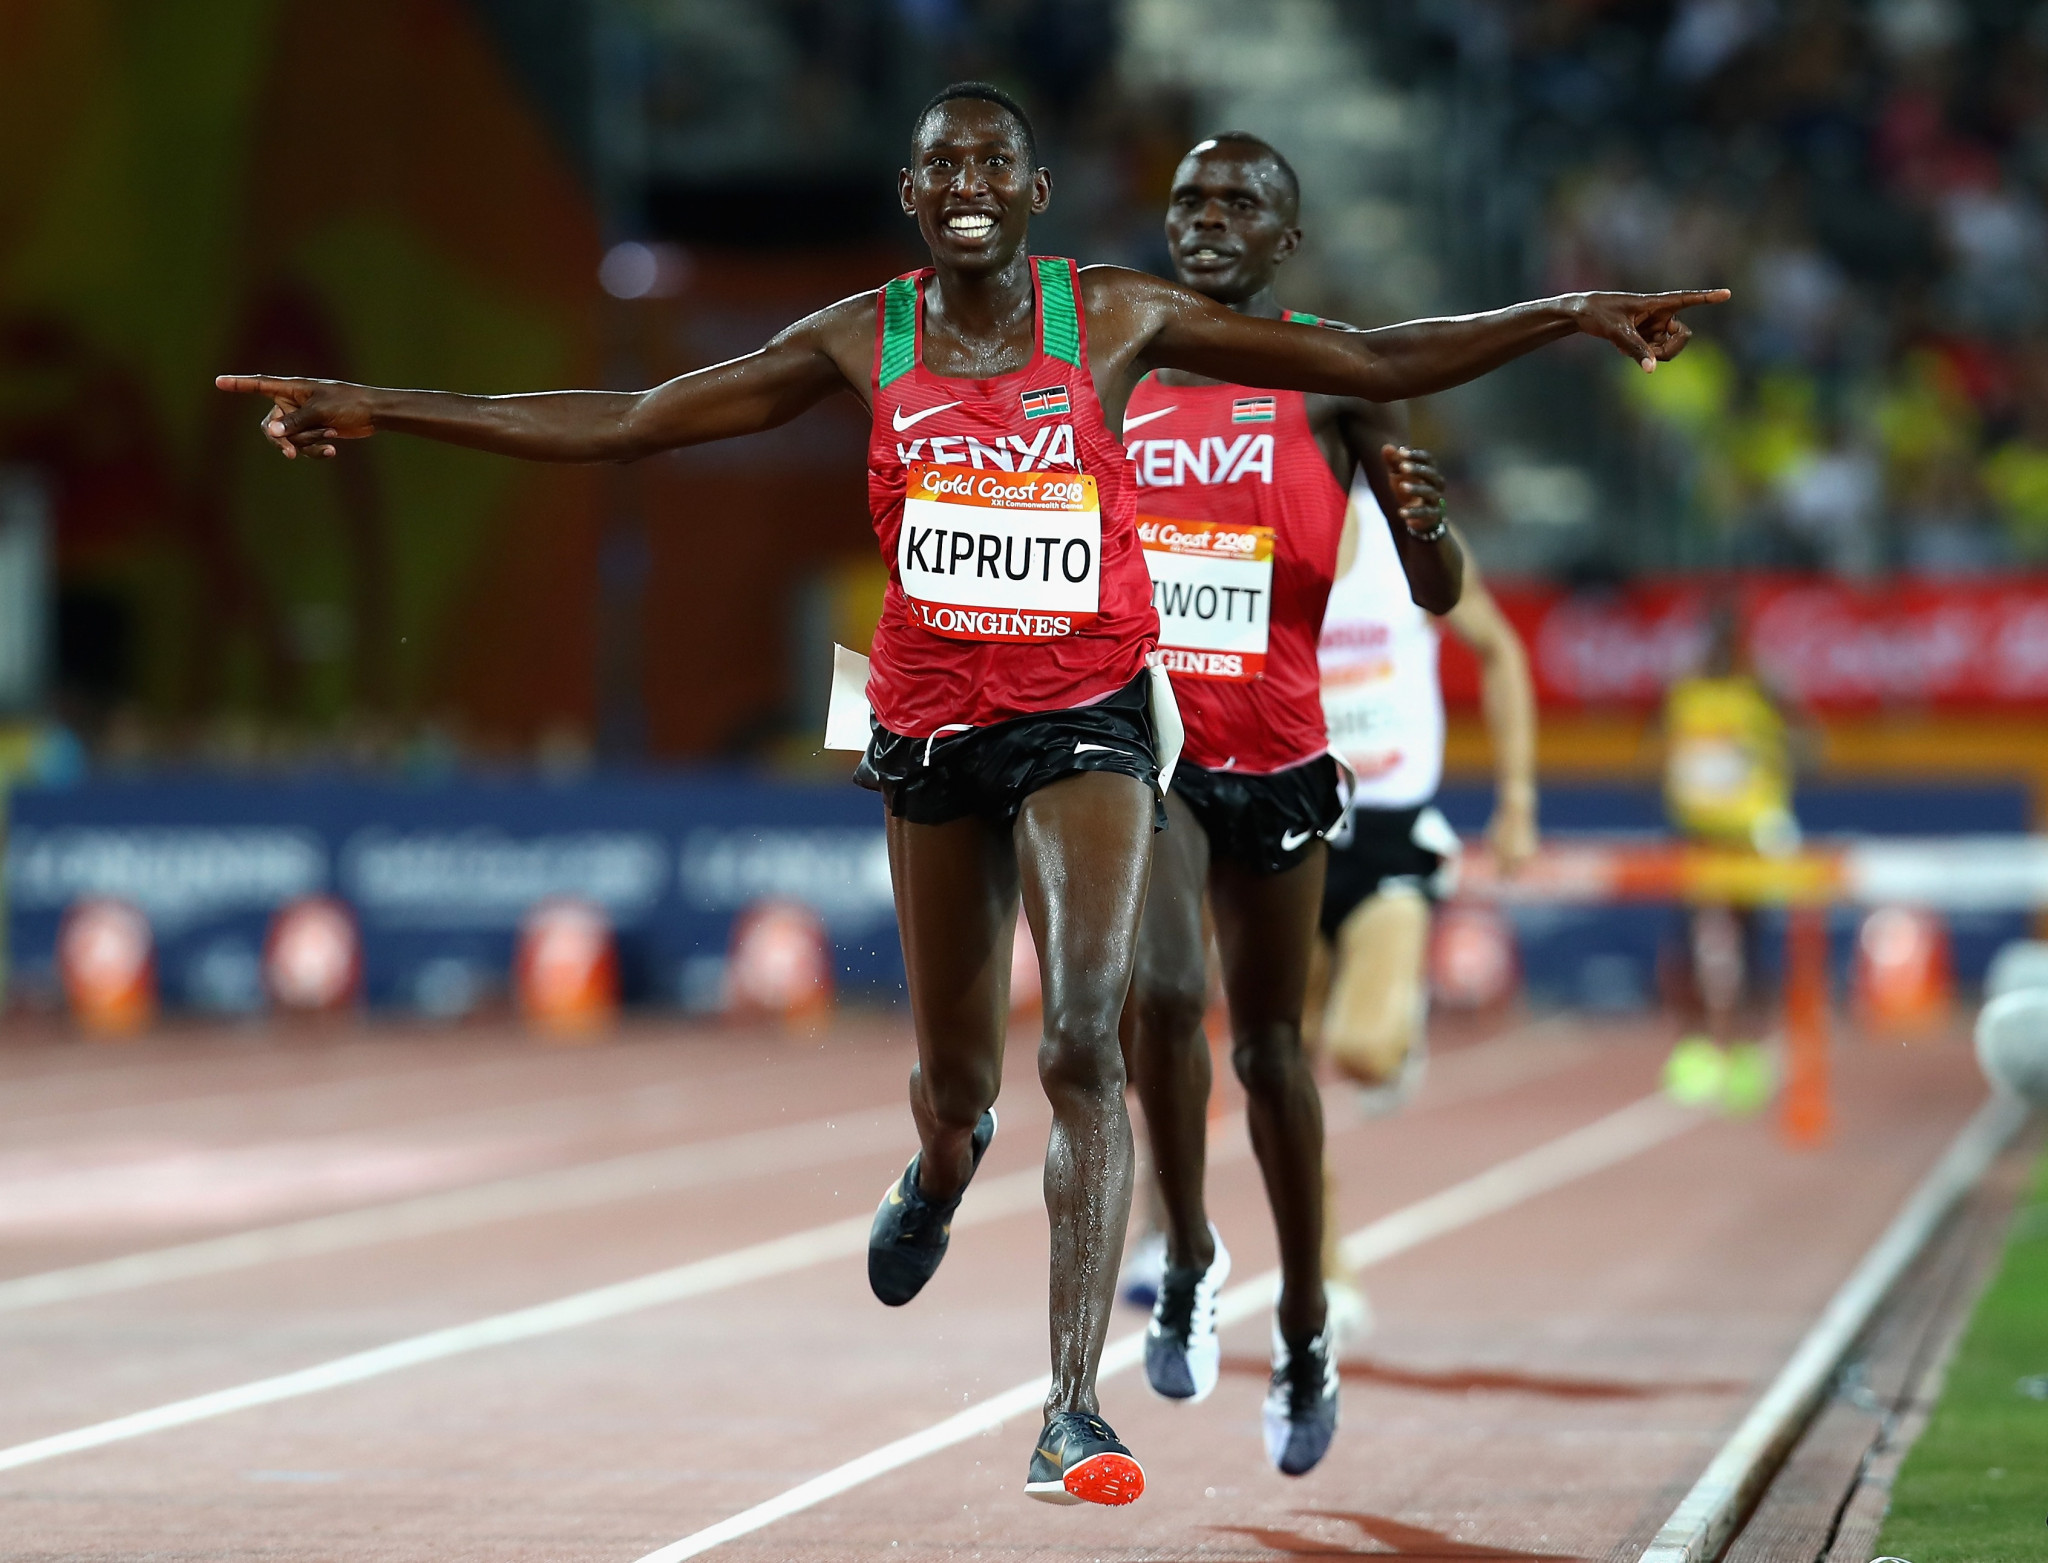 A new deal between Kenya's NOC and the Kenya Charity Sweepstake will ensure financial support for Olympians until the Paris 2024 Games ©Getty Images